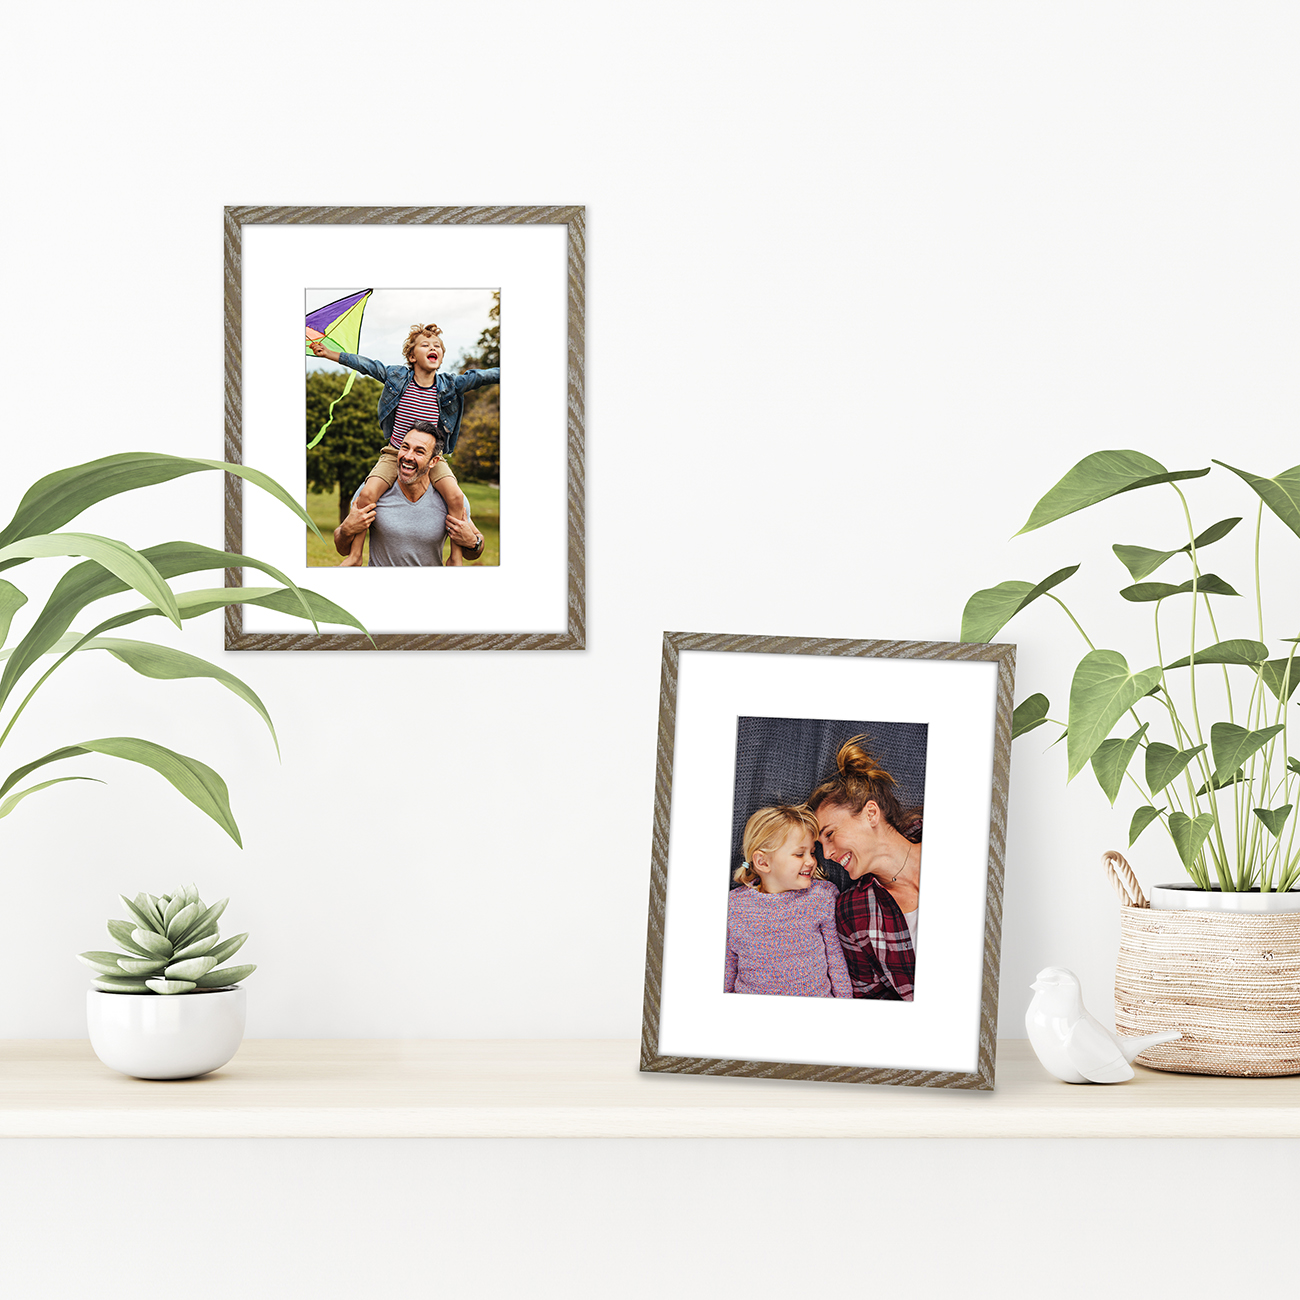 miniature 24 - Americanflat Thin Picture Frame 5x7 8x10 11x14 8.5x11 Wall Tabletop Pick Color